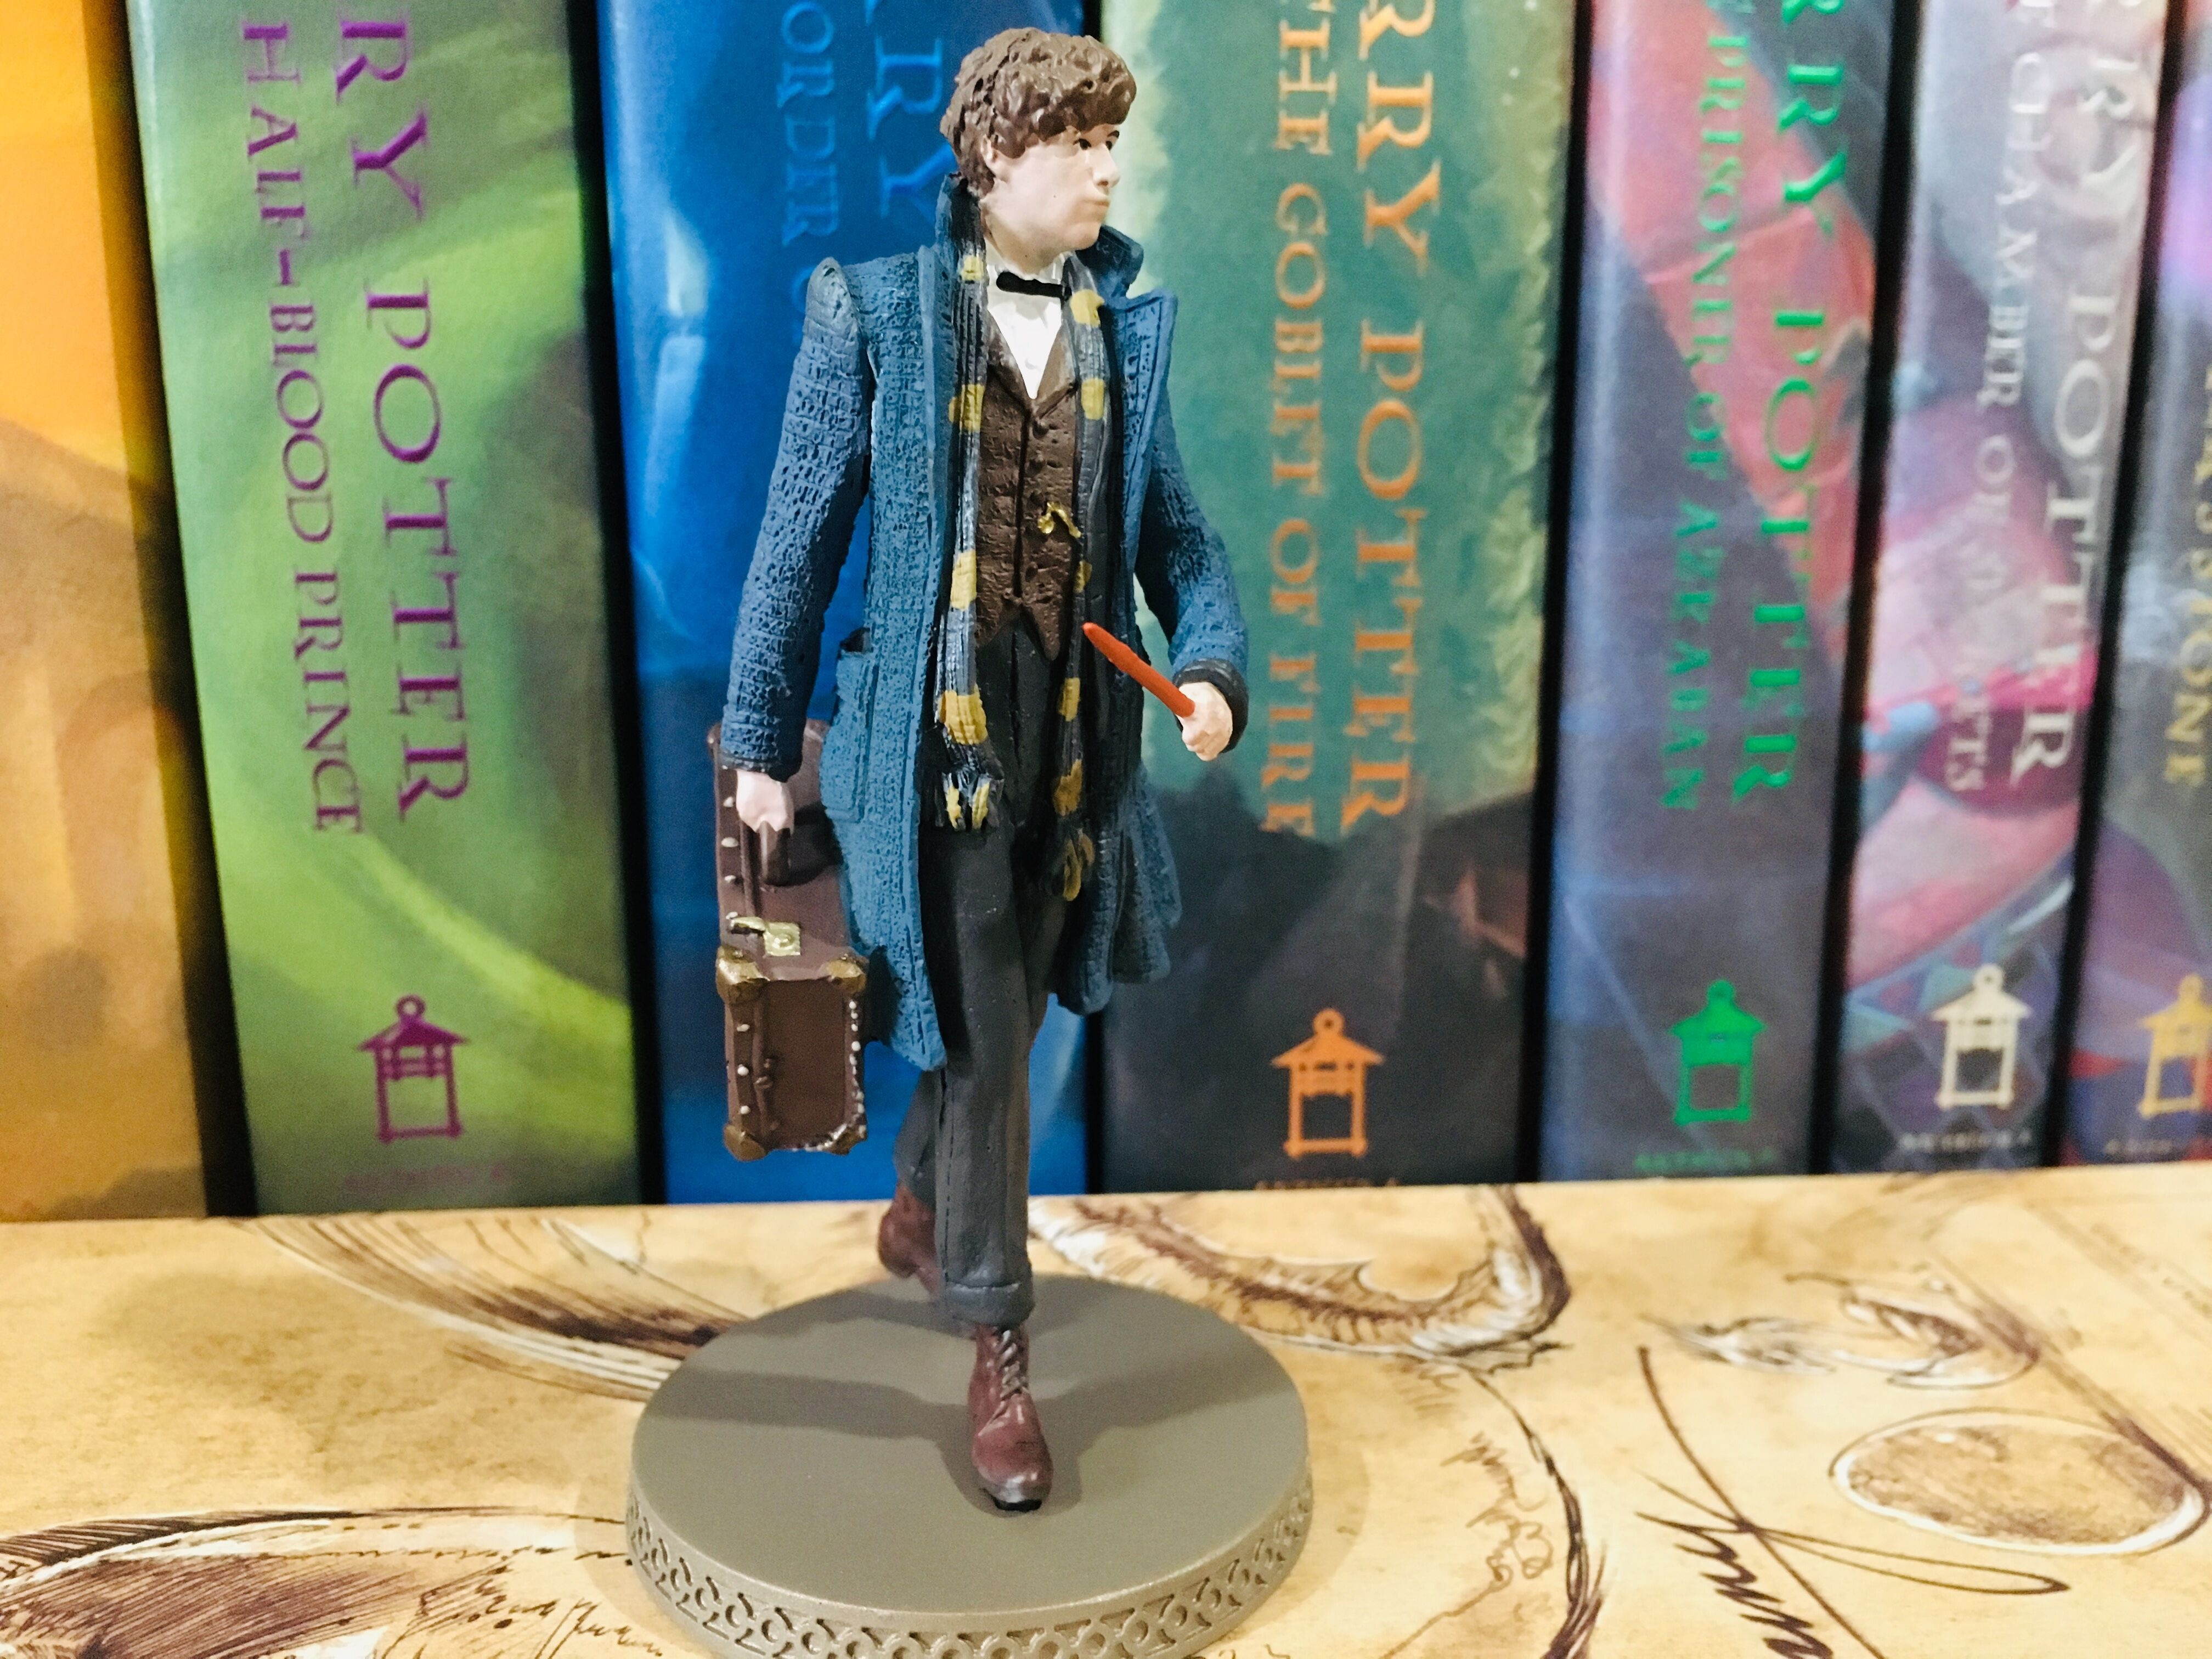 Newt is stunningly detailed from this front angle, with his blue overcoat flapping in the wind and his case in his hand.